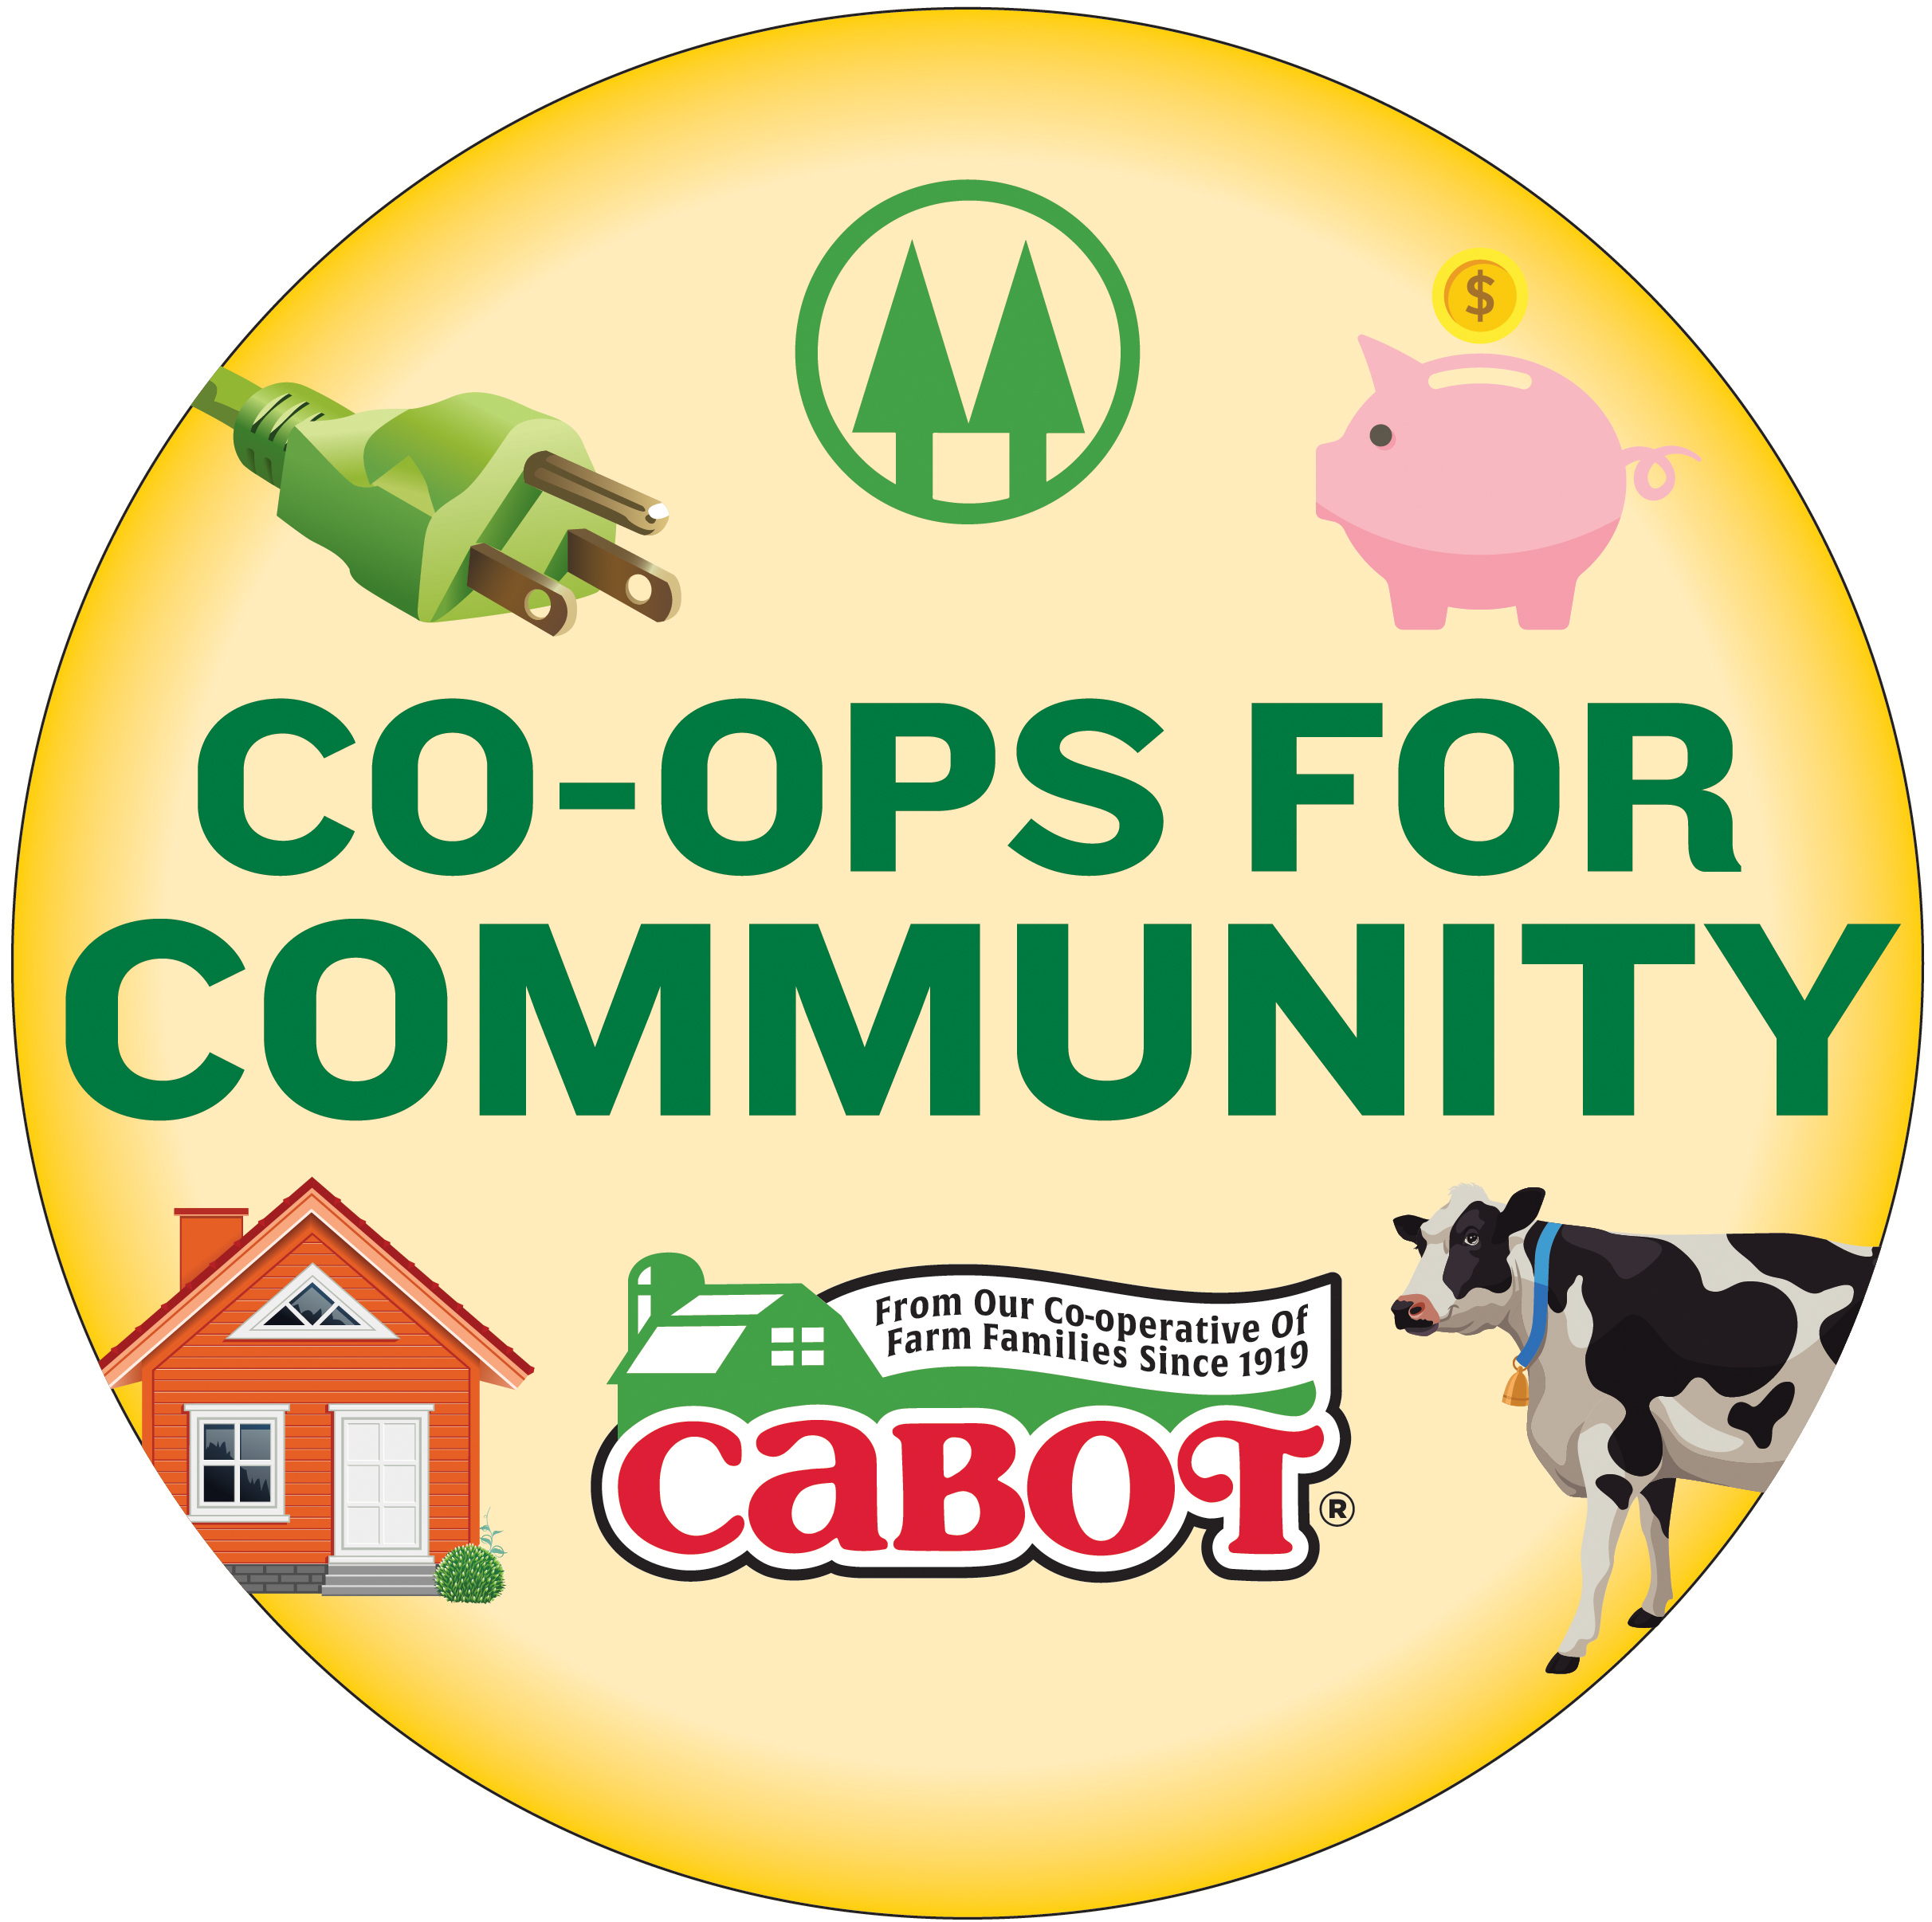 www.cabotcheese.coop/patches